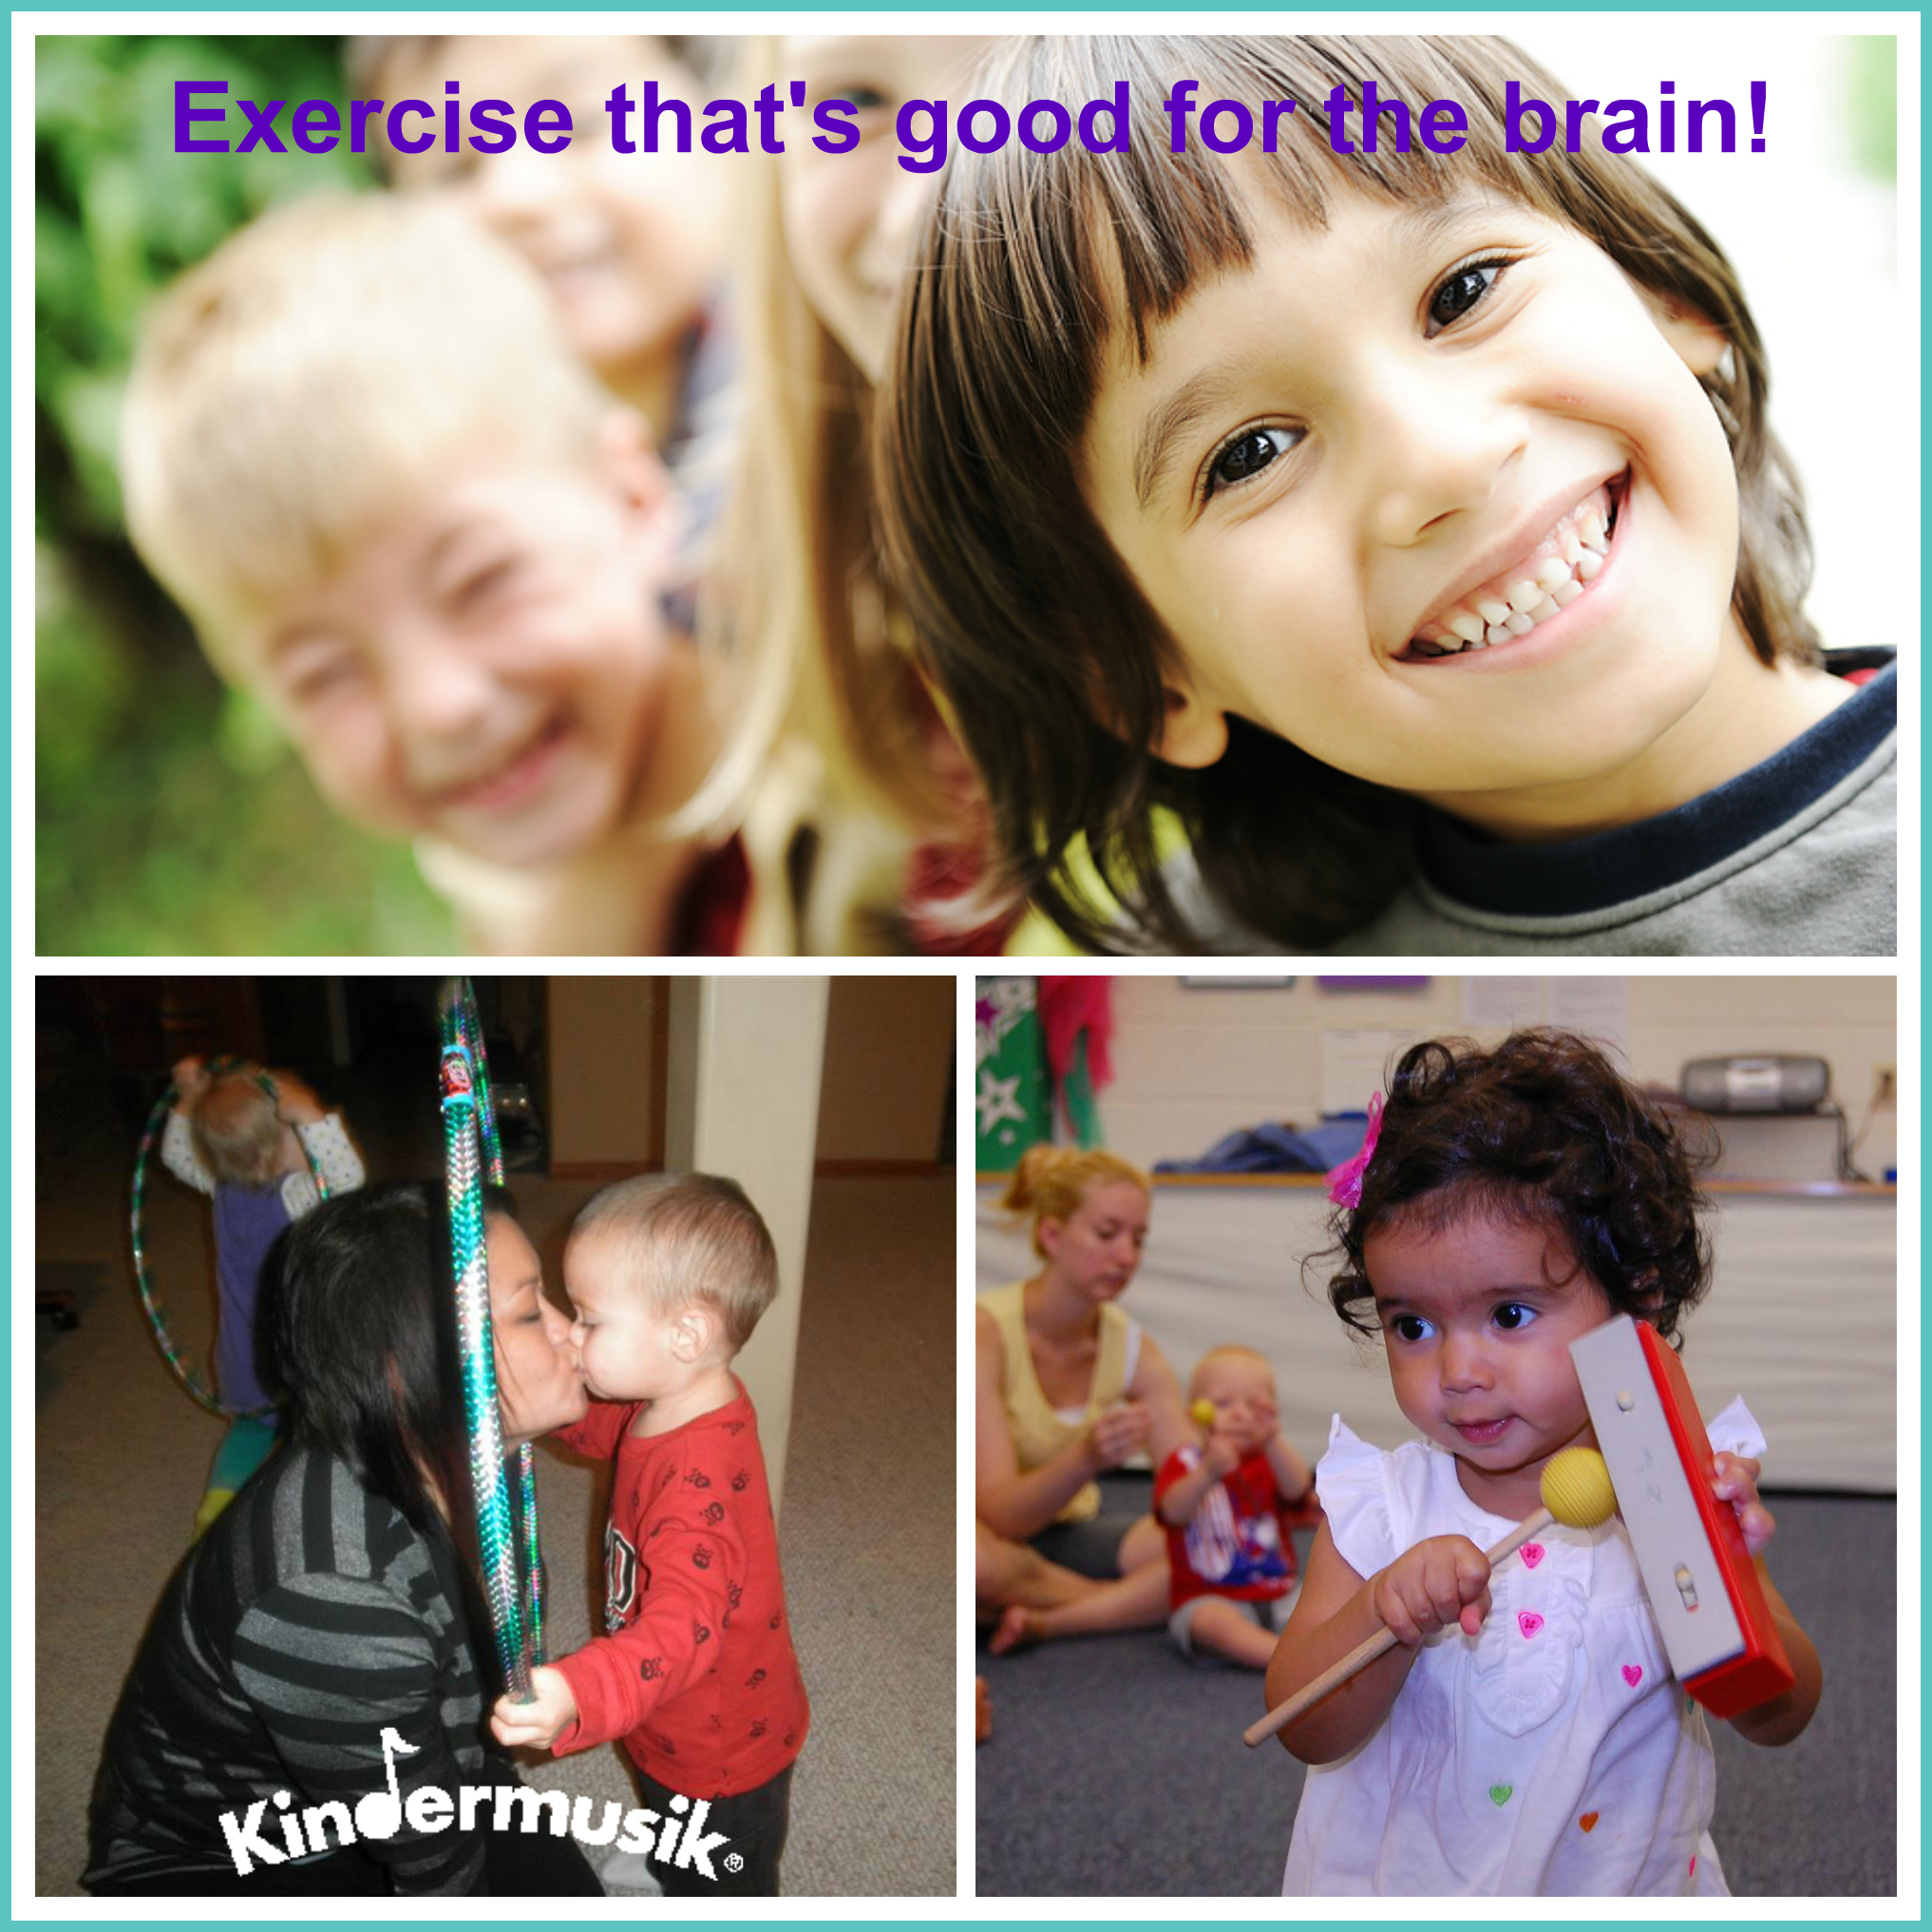 exercise that's good for the brain